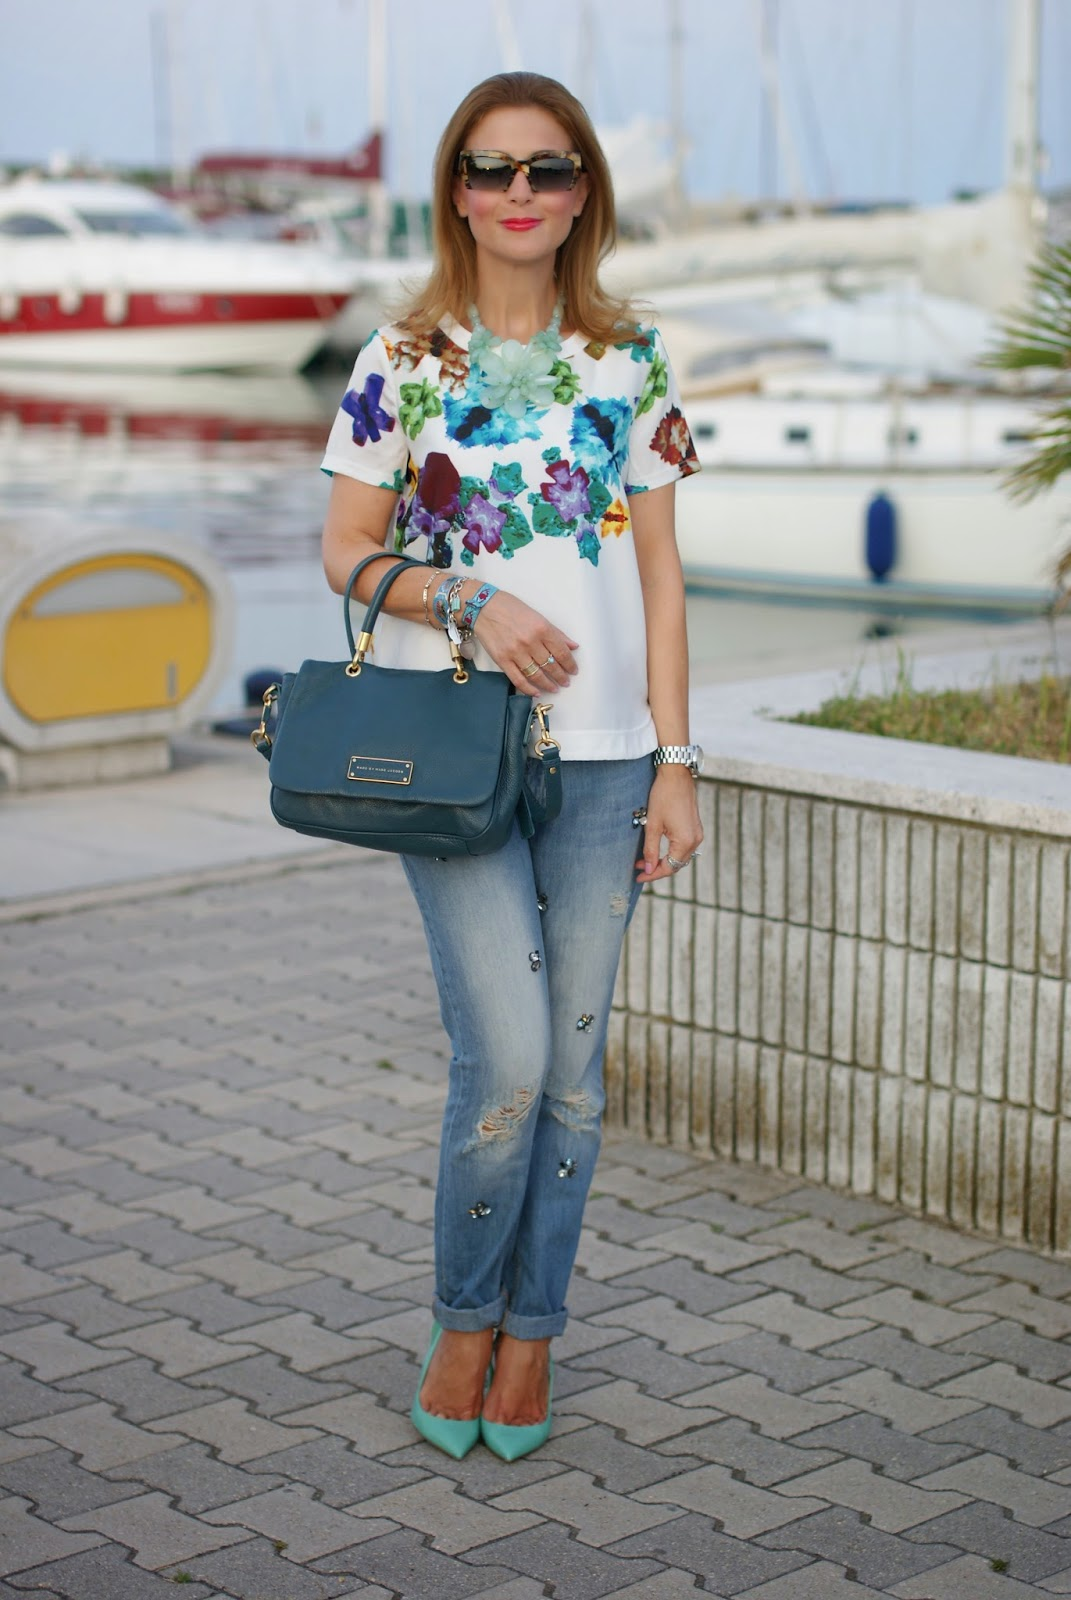 blackfive floral blouse, jeweled boyfriend jeans, miu miu rasoir sunnies, le silla tiffany pumps, Fashion and Cookies, fashion blogger